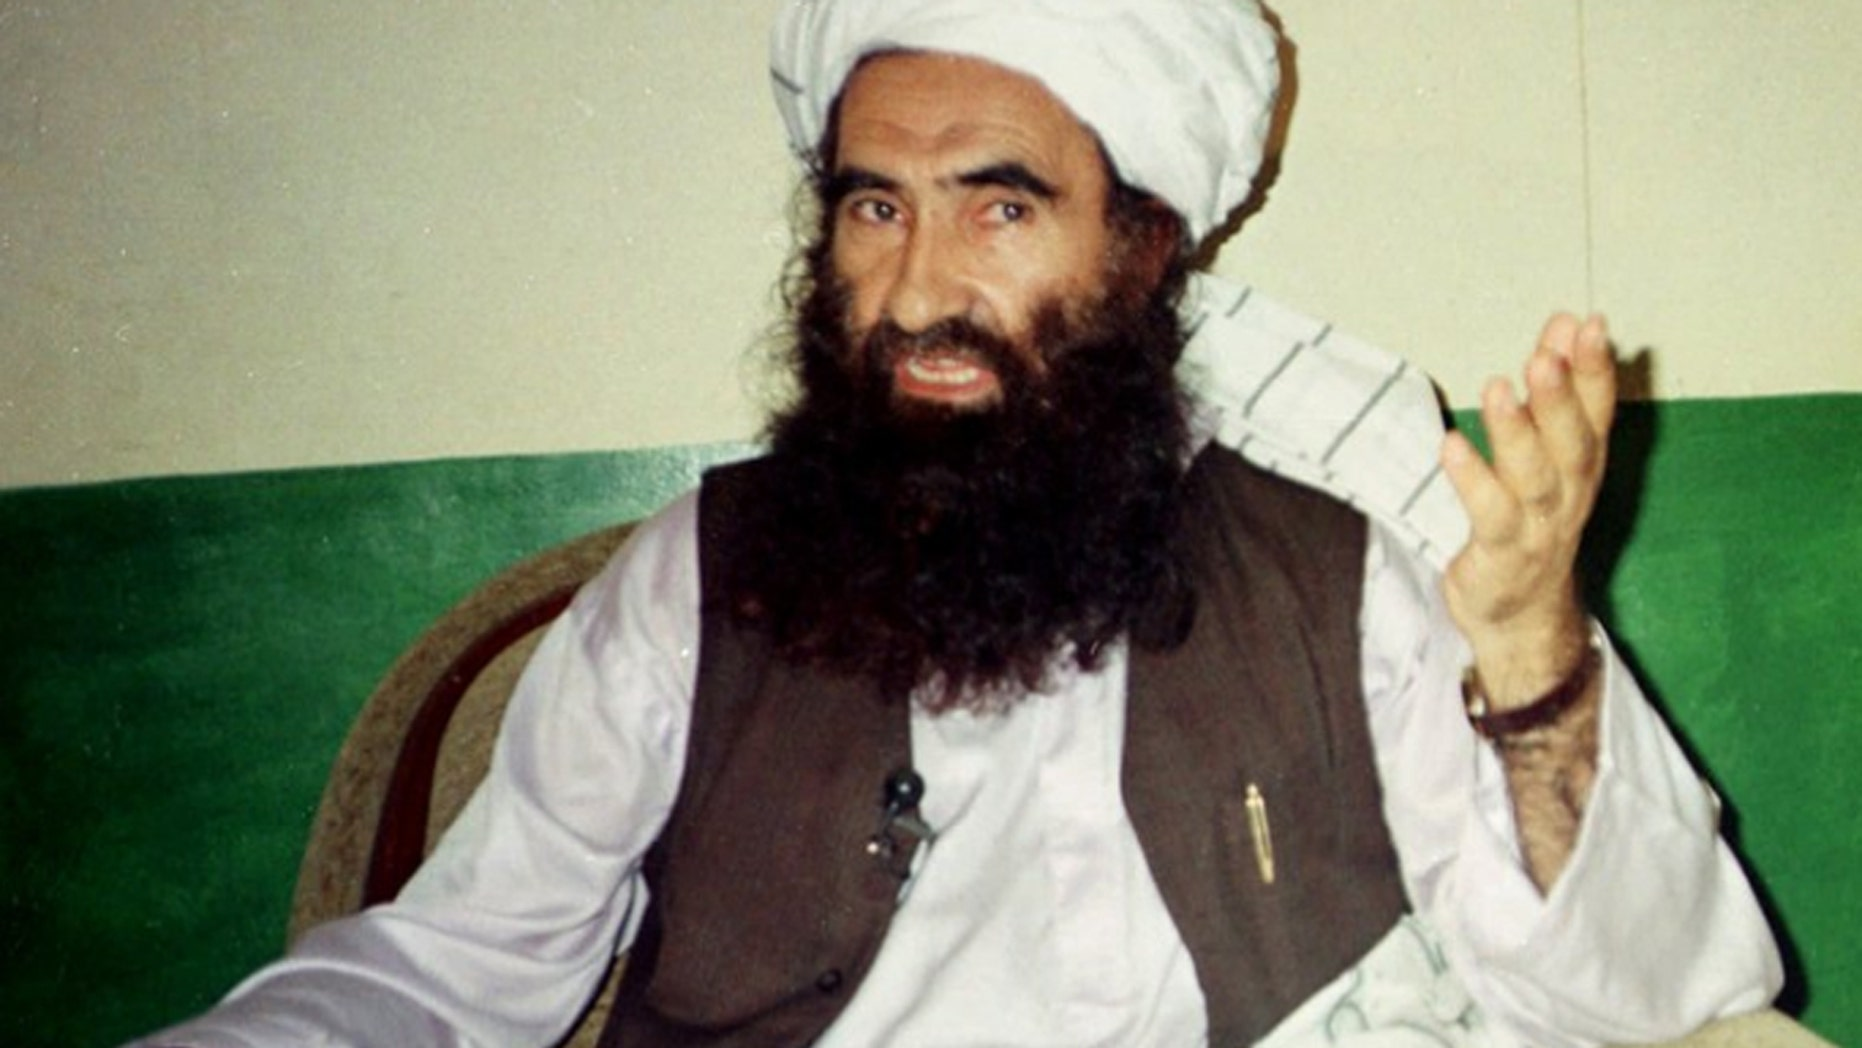 The Taliban announced Monday that Jalaluddin Haqqani has died after a long illness.